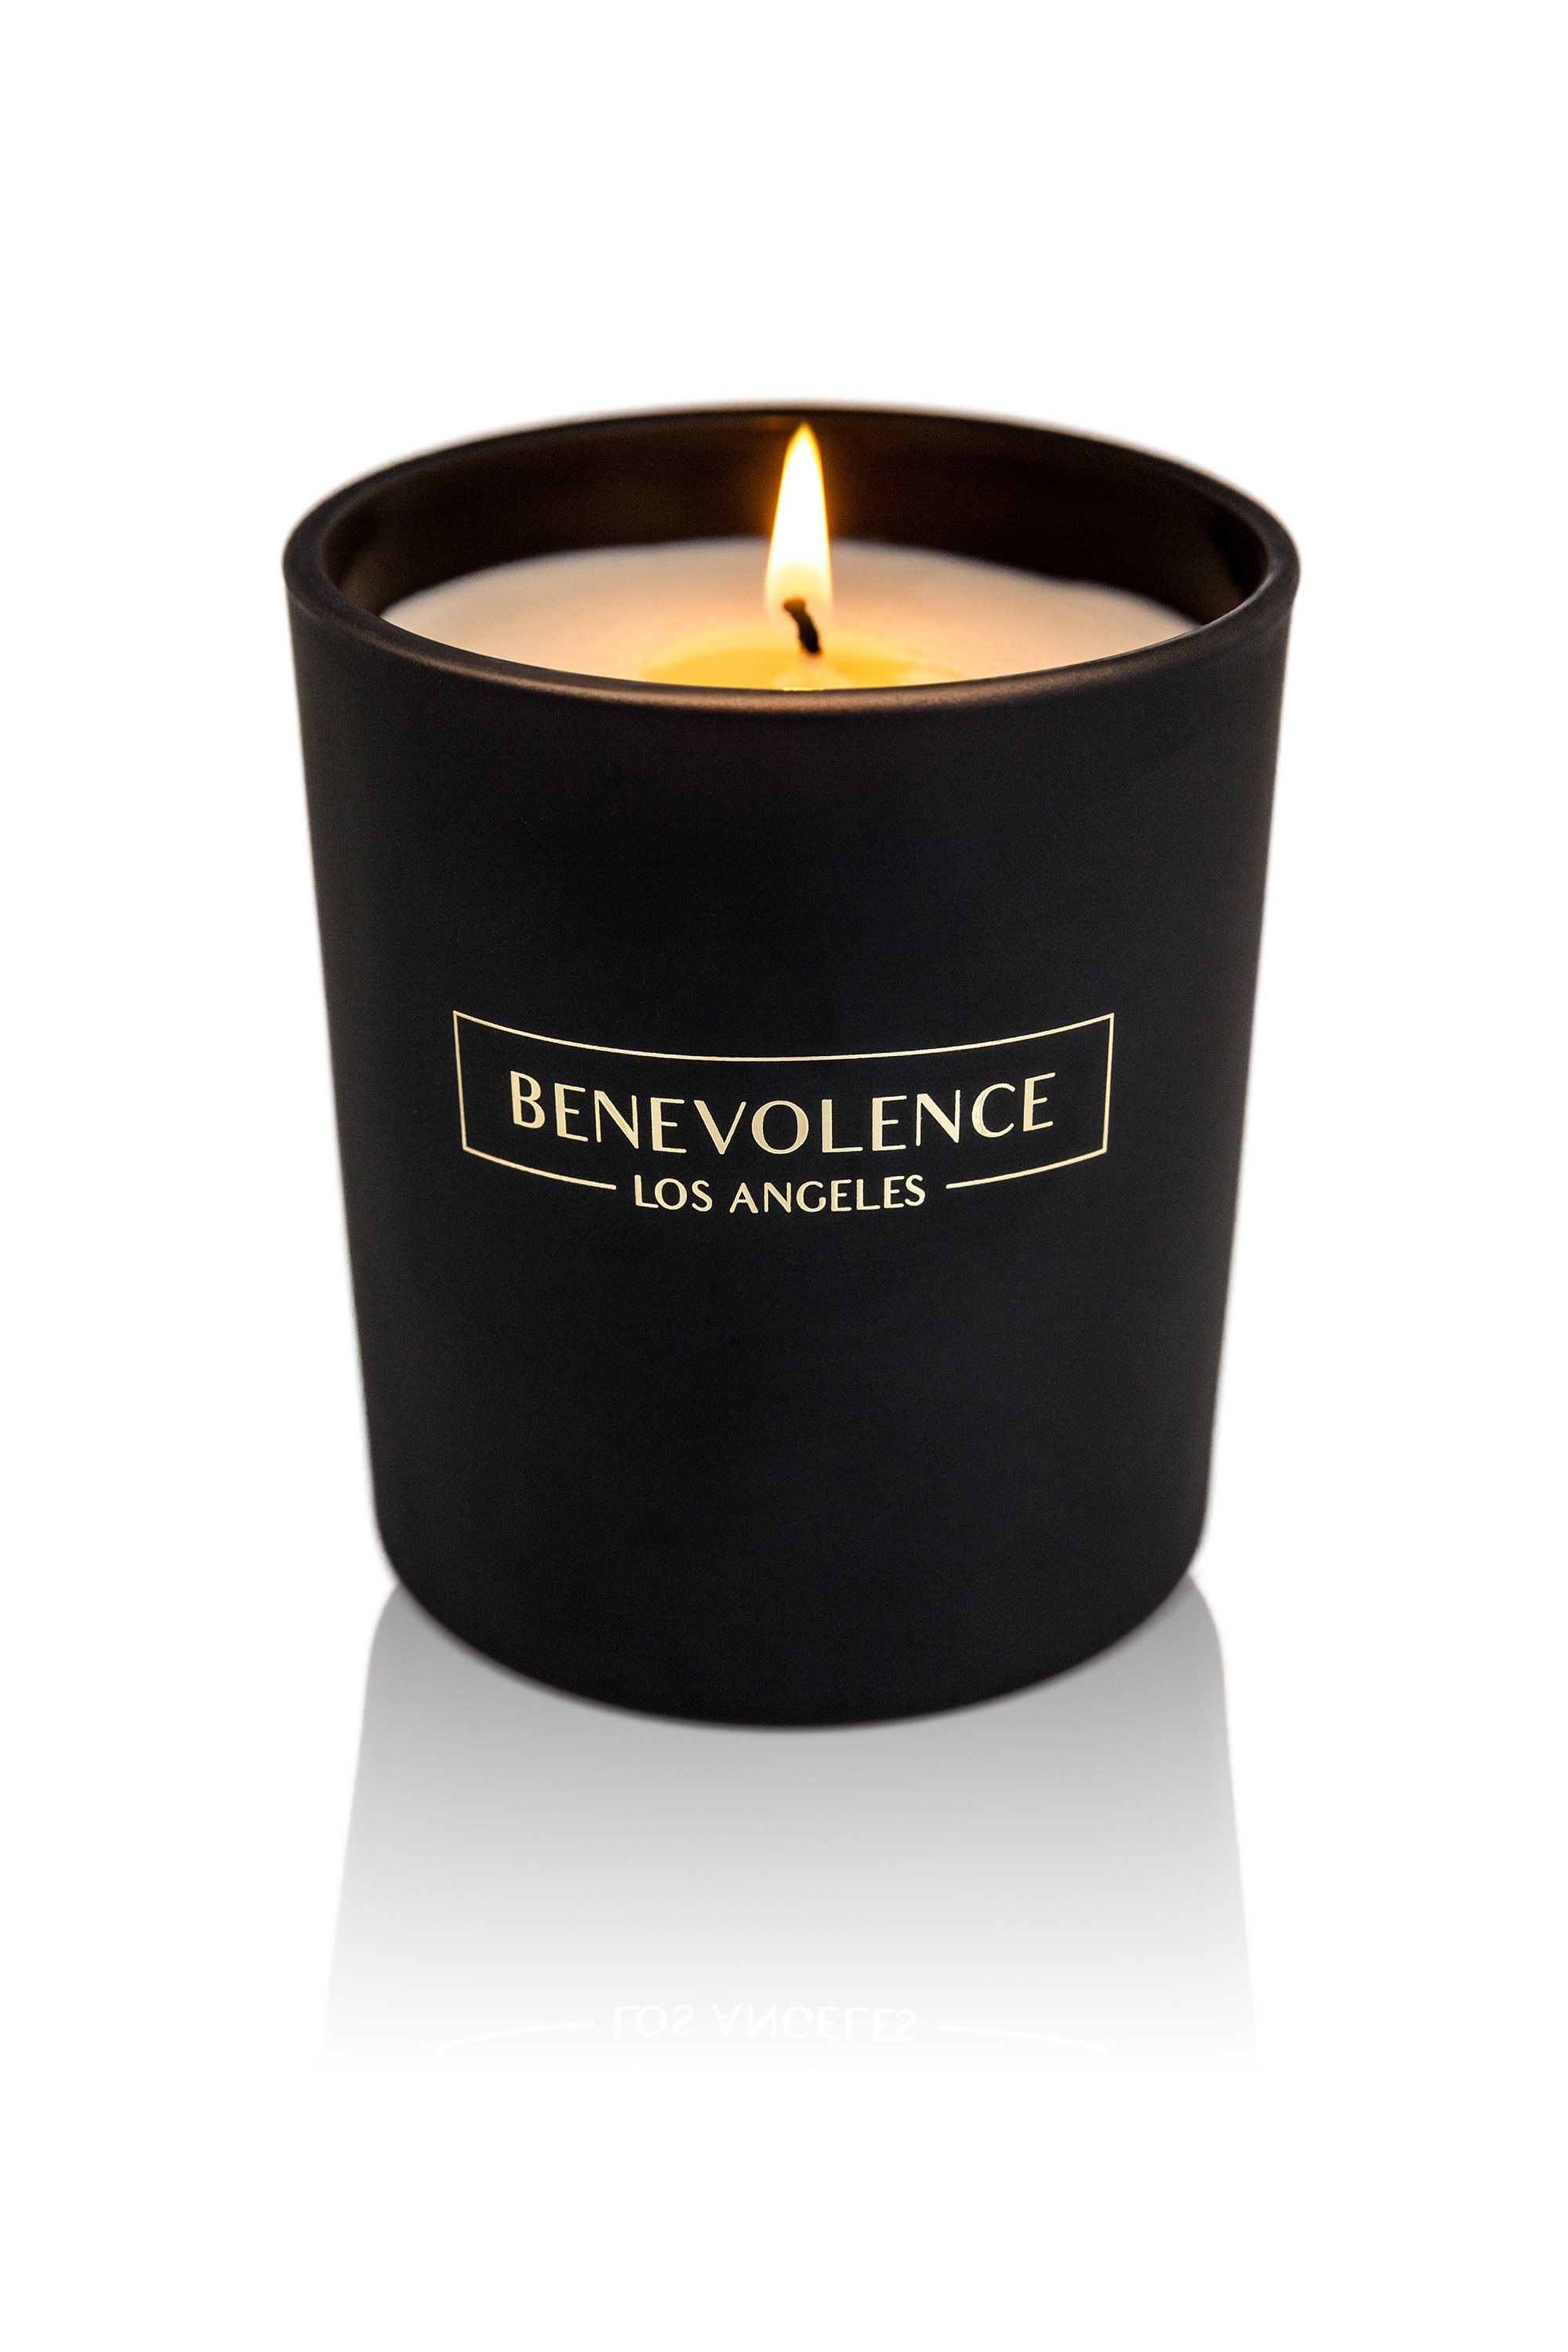 Soy Wax Based Scented Candles – Benevolence LA